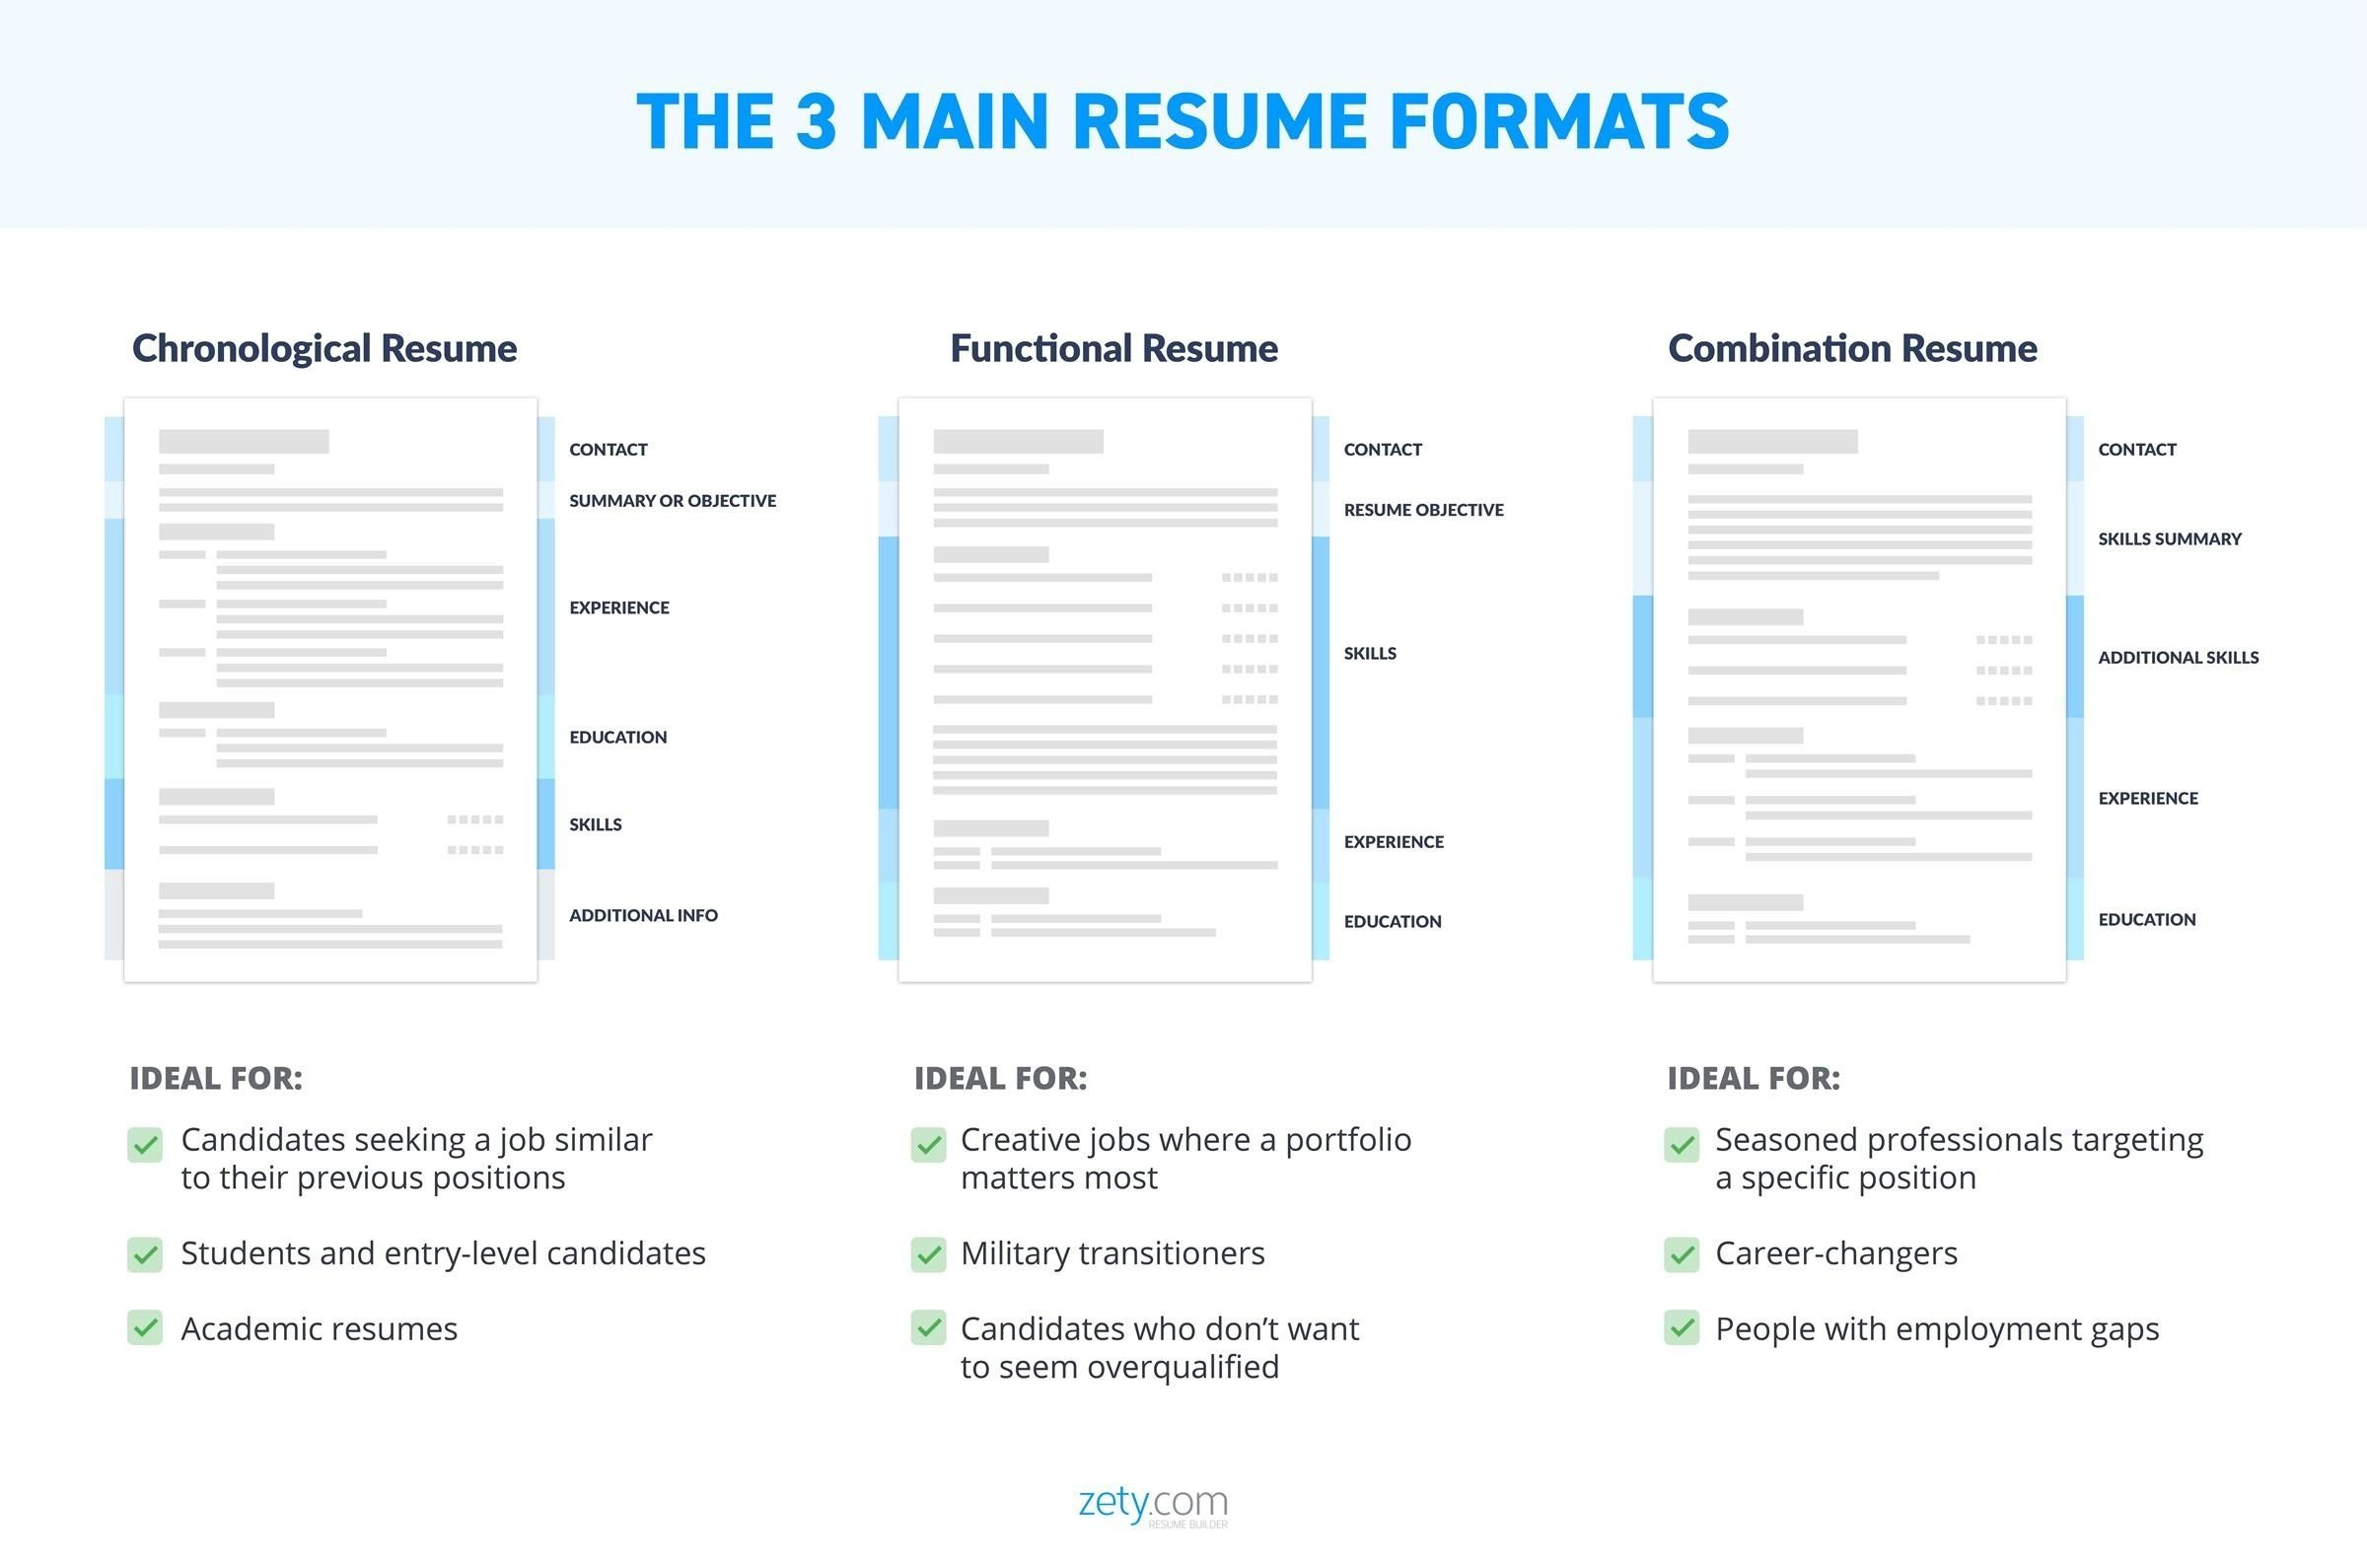 Cv Format For Job from cdn-images.zety.com